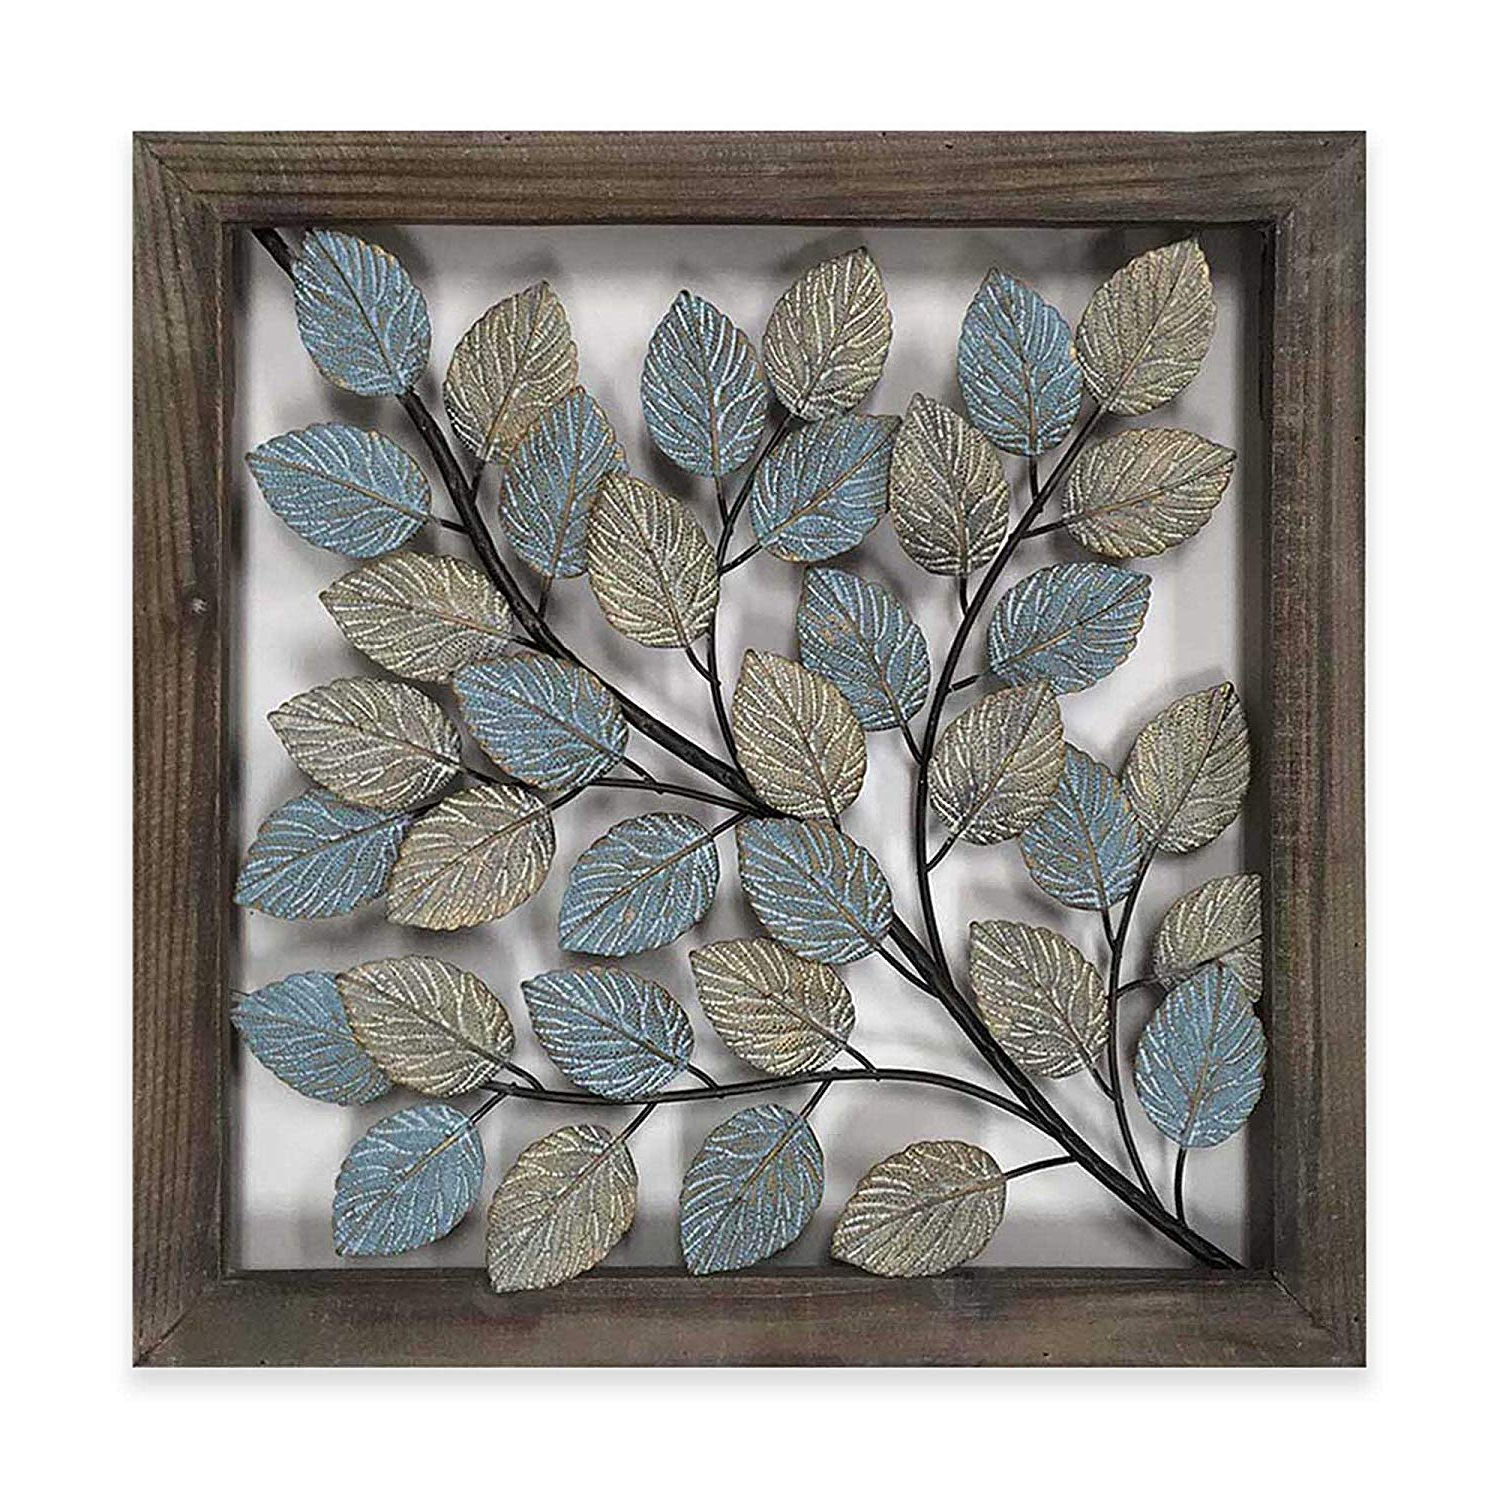 Current Olive/gray Metal Wall Decor With Amazon: Leaves Metal Wall Art Decor In Blue & Cream: Home & Kitchen (View 6 of 20)